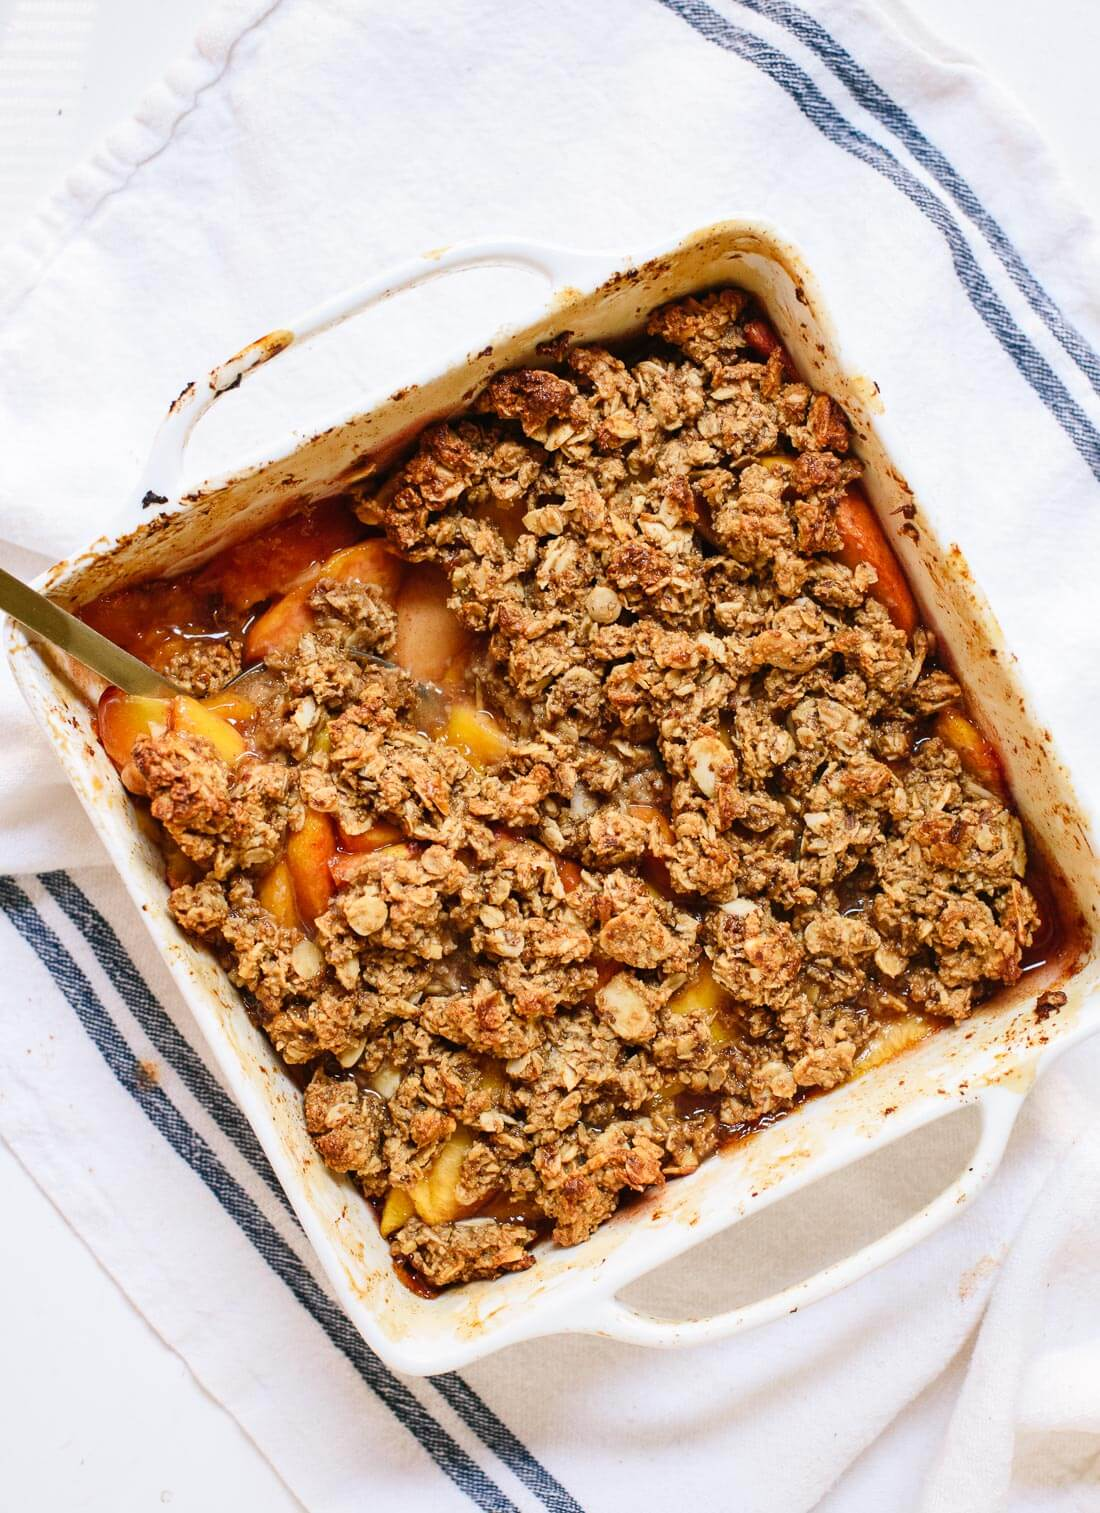 This lightened up, healthy peach crisp recipe is the perfect summertime dessert. cookieandkate.com